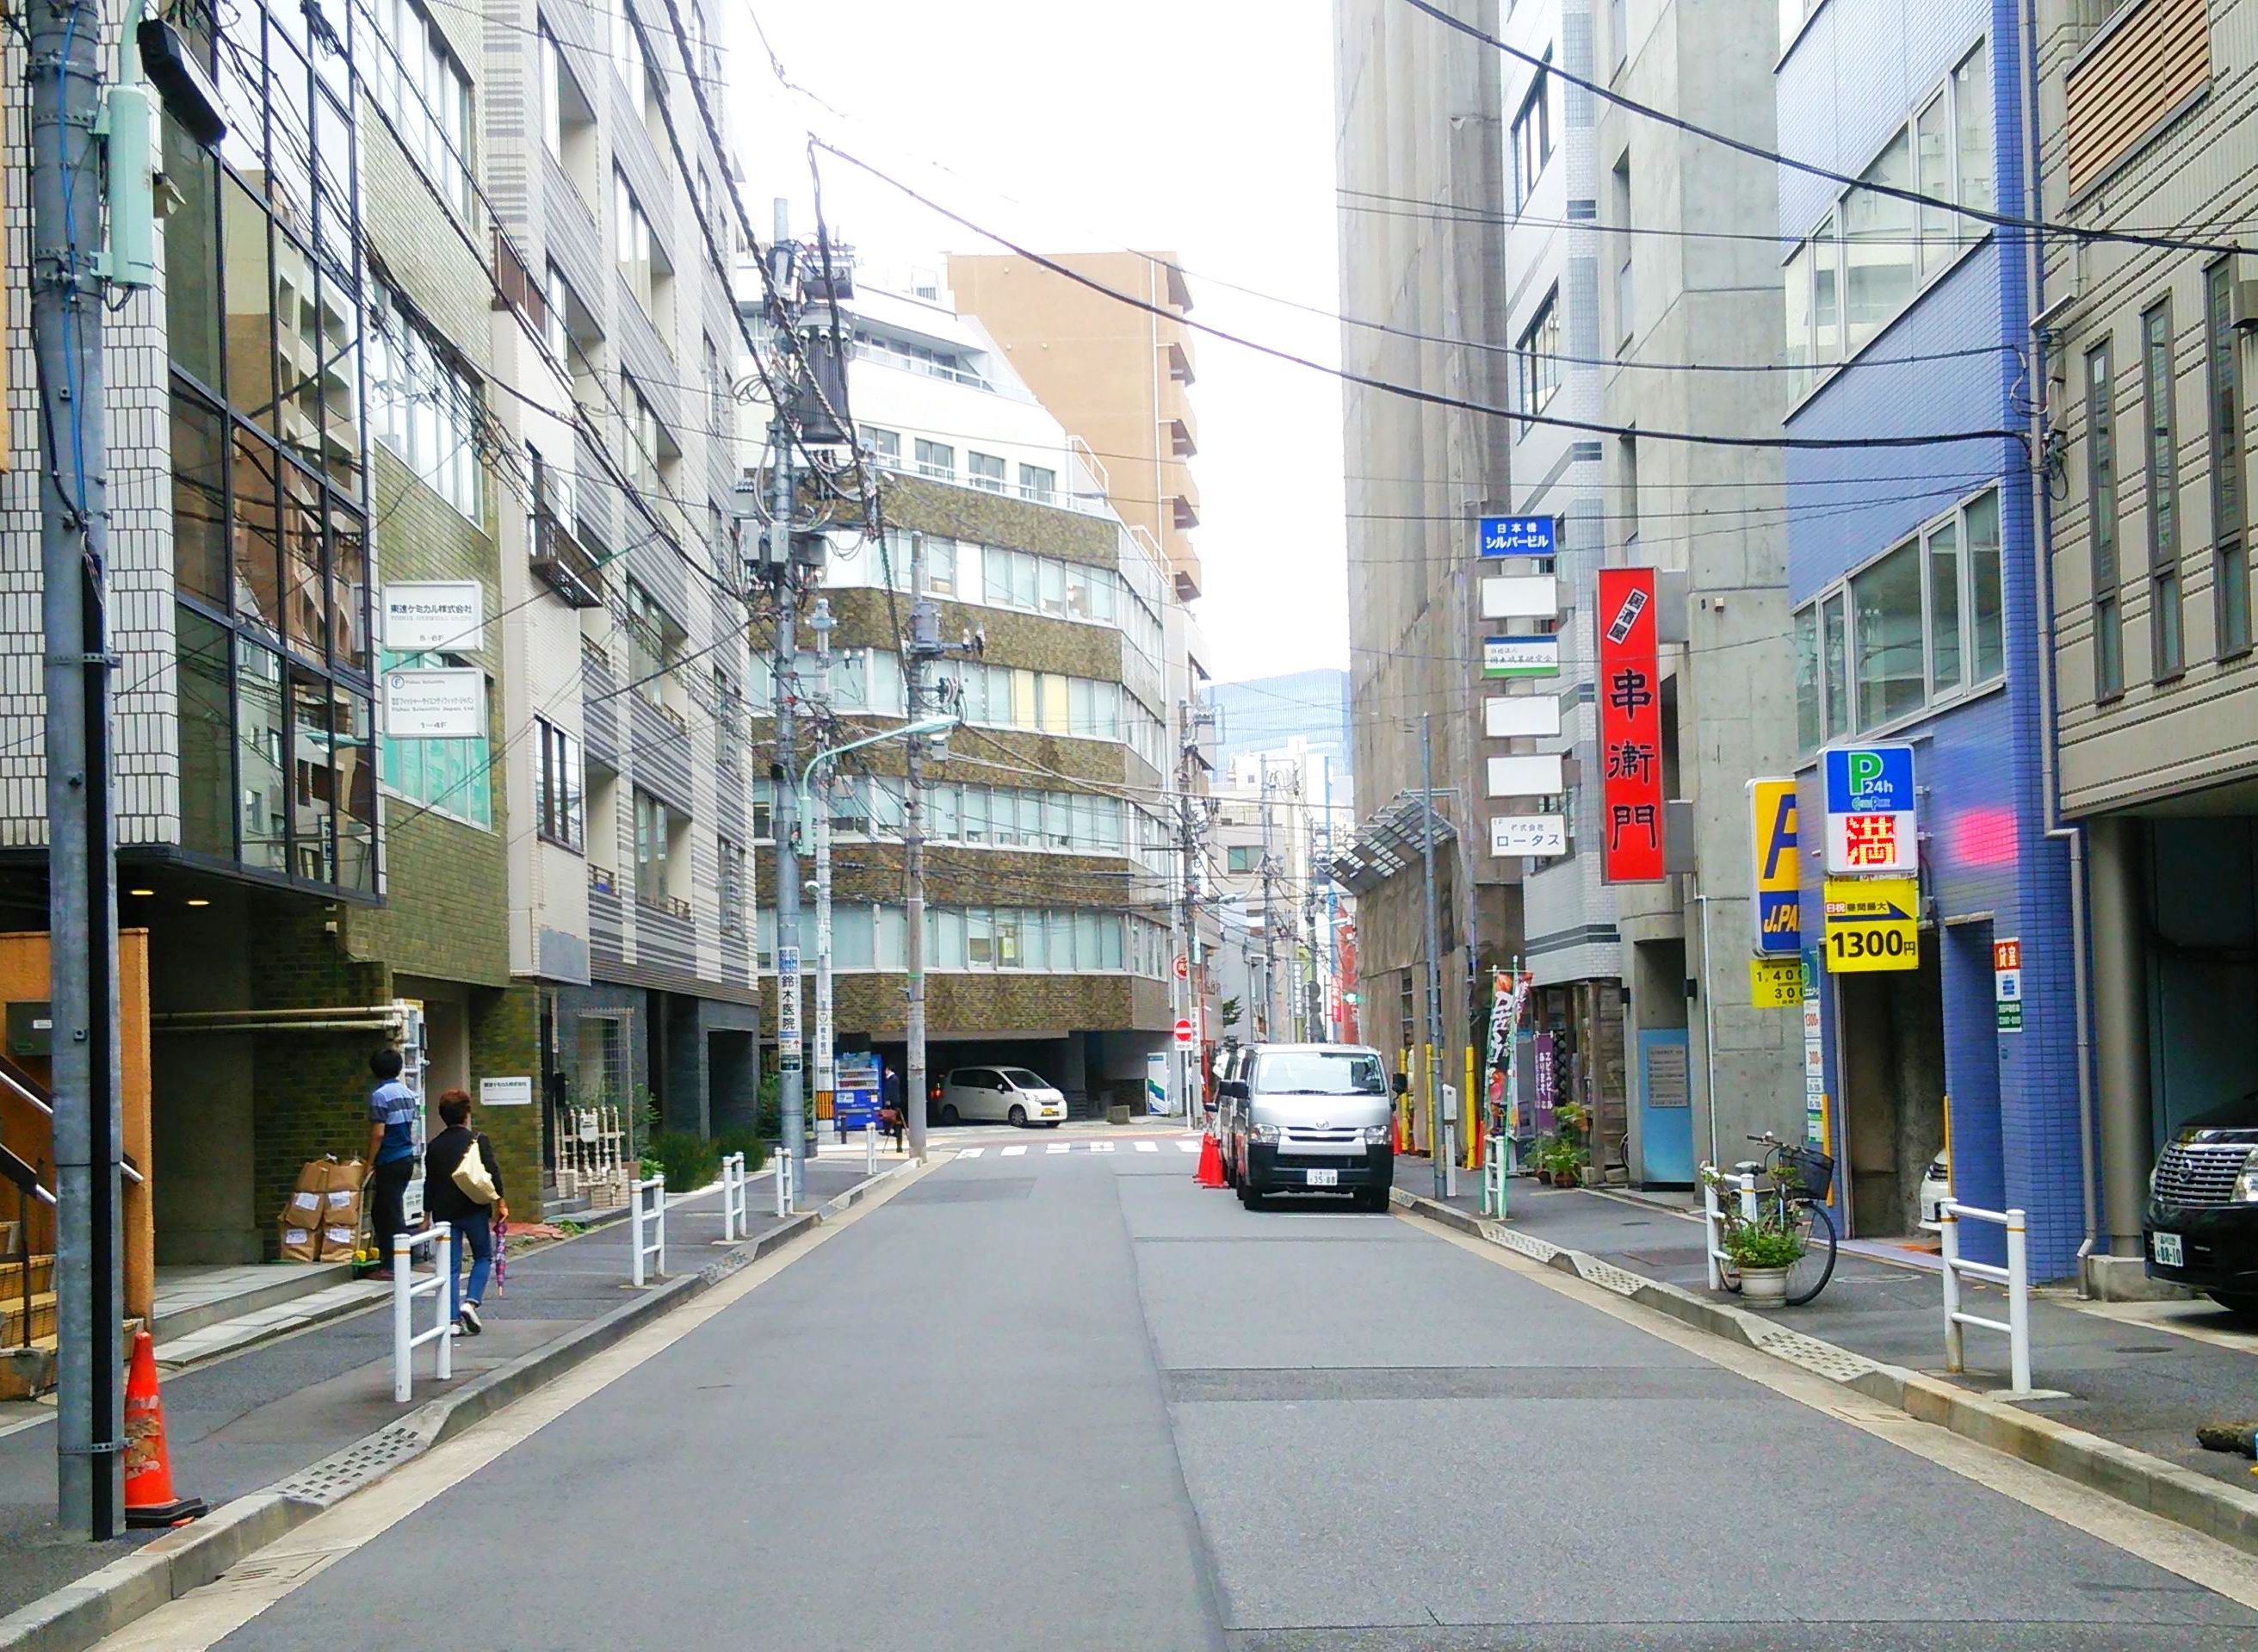 Street in front of Unius building